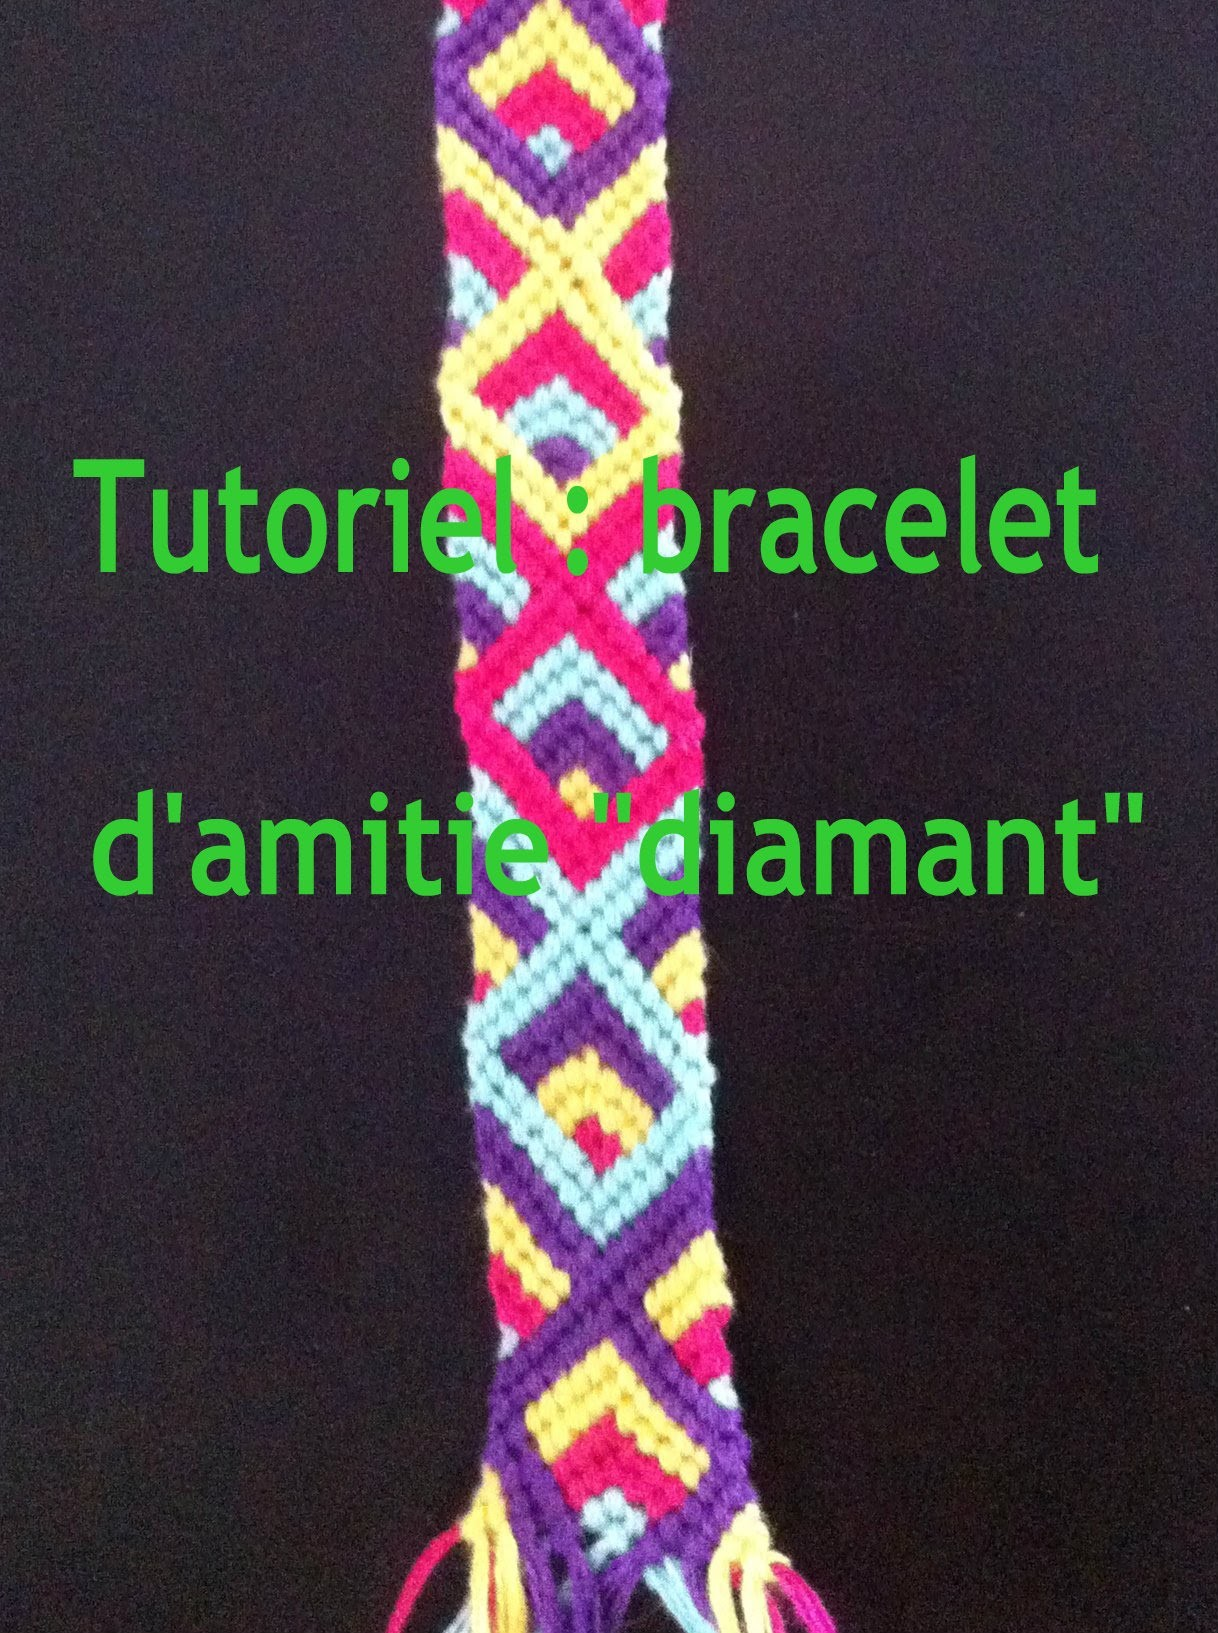 "Bracelet d'amitié ""Diamant"" tutoriel.Diamond Friendship Bracelet tutorial"